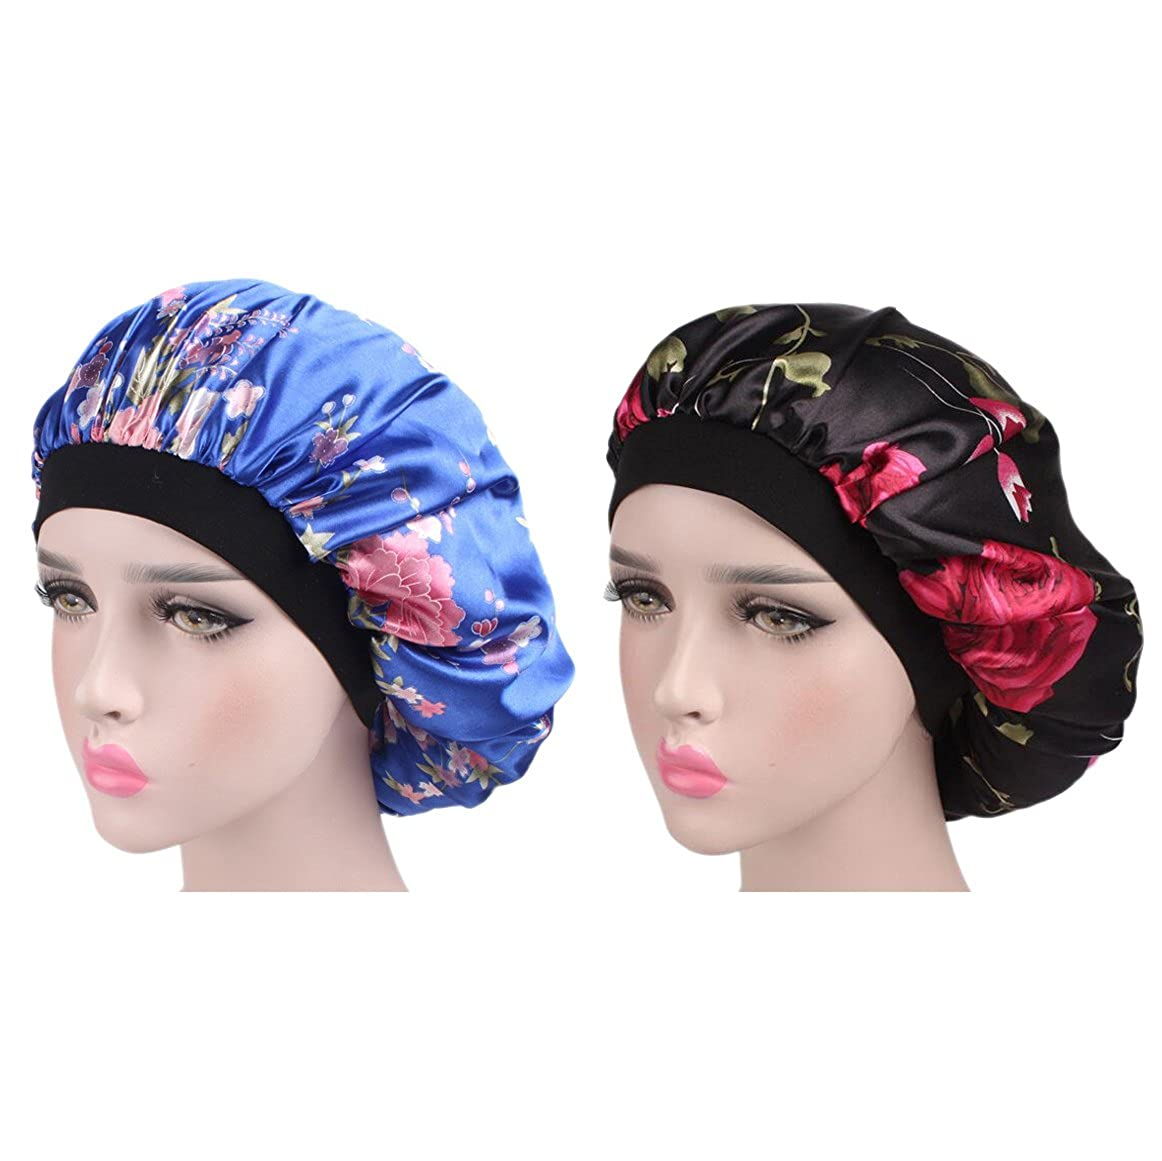 AWAYTR Satin Bonnet Hat Wide Band Night Sleep Cap Hair Loss Cap 2Pack